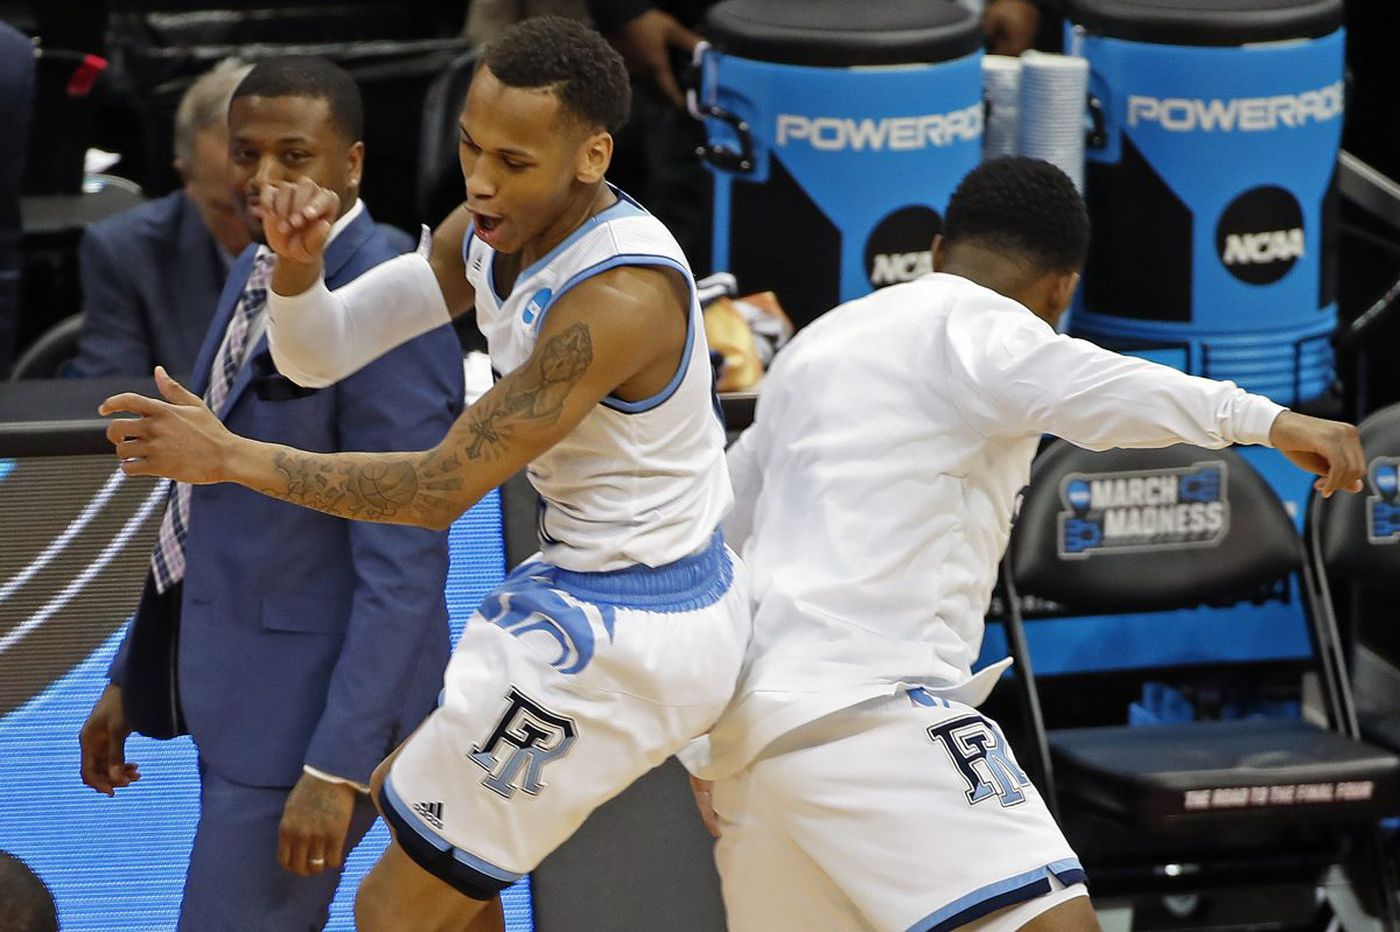 Rhode Island's Fatts Russell, Imhotep Charter product, makes big shots in March Madness win over Trae Young, Oklahoma